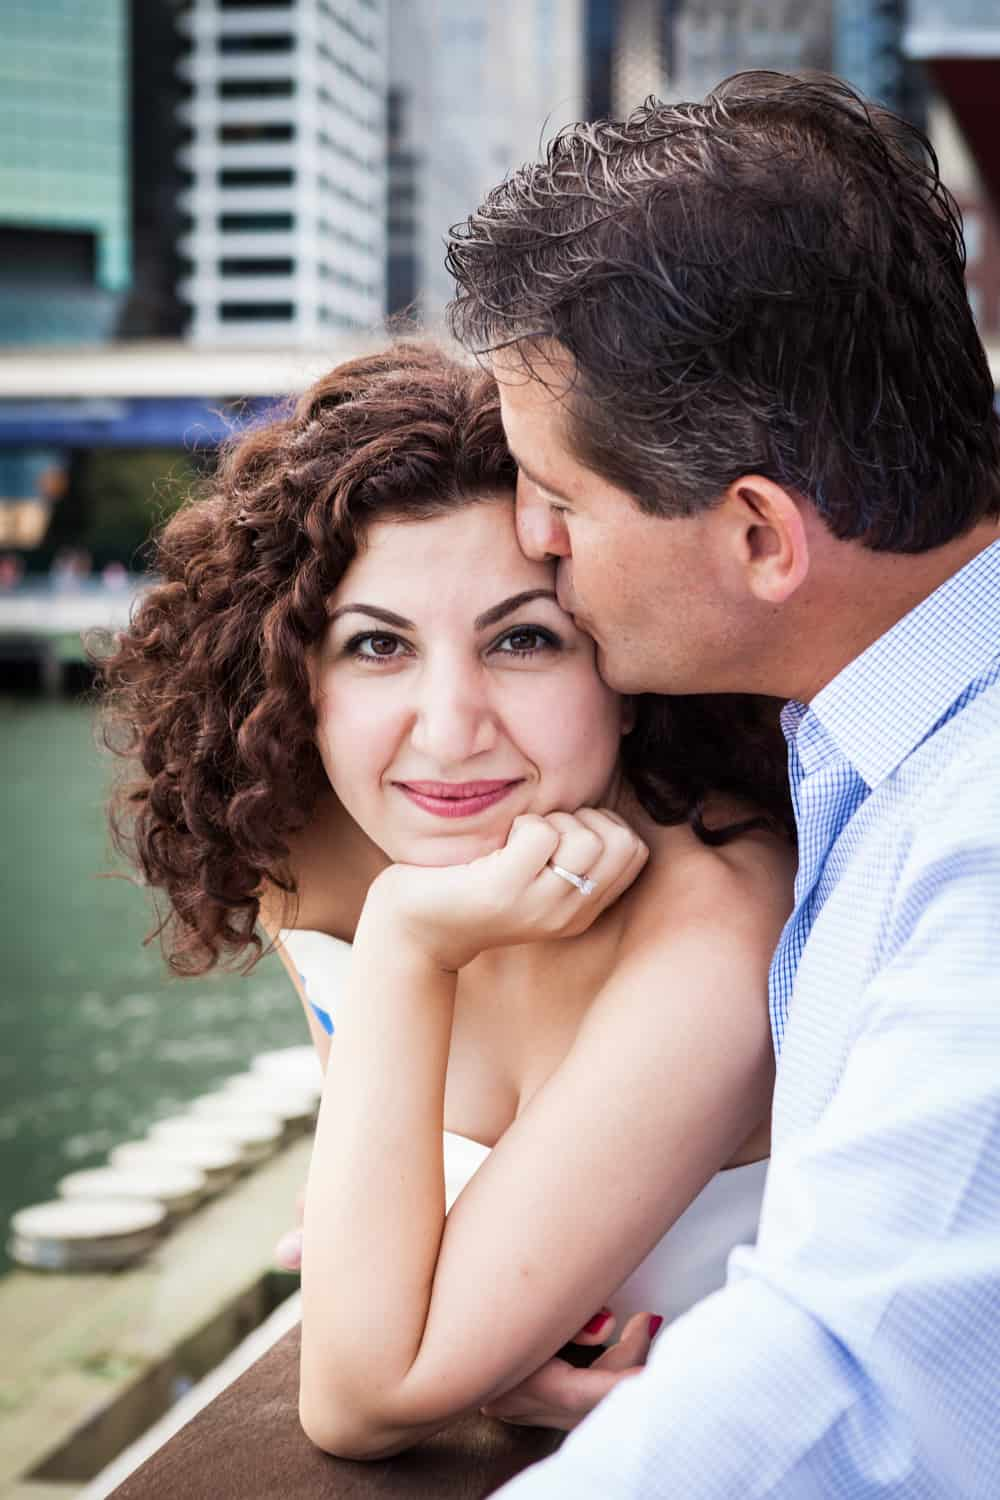 Financial District engagement photos of man kissing woman on the forehead